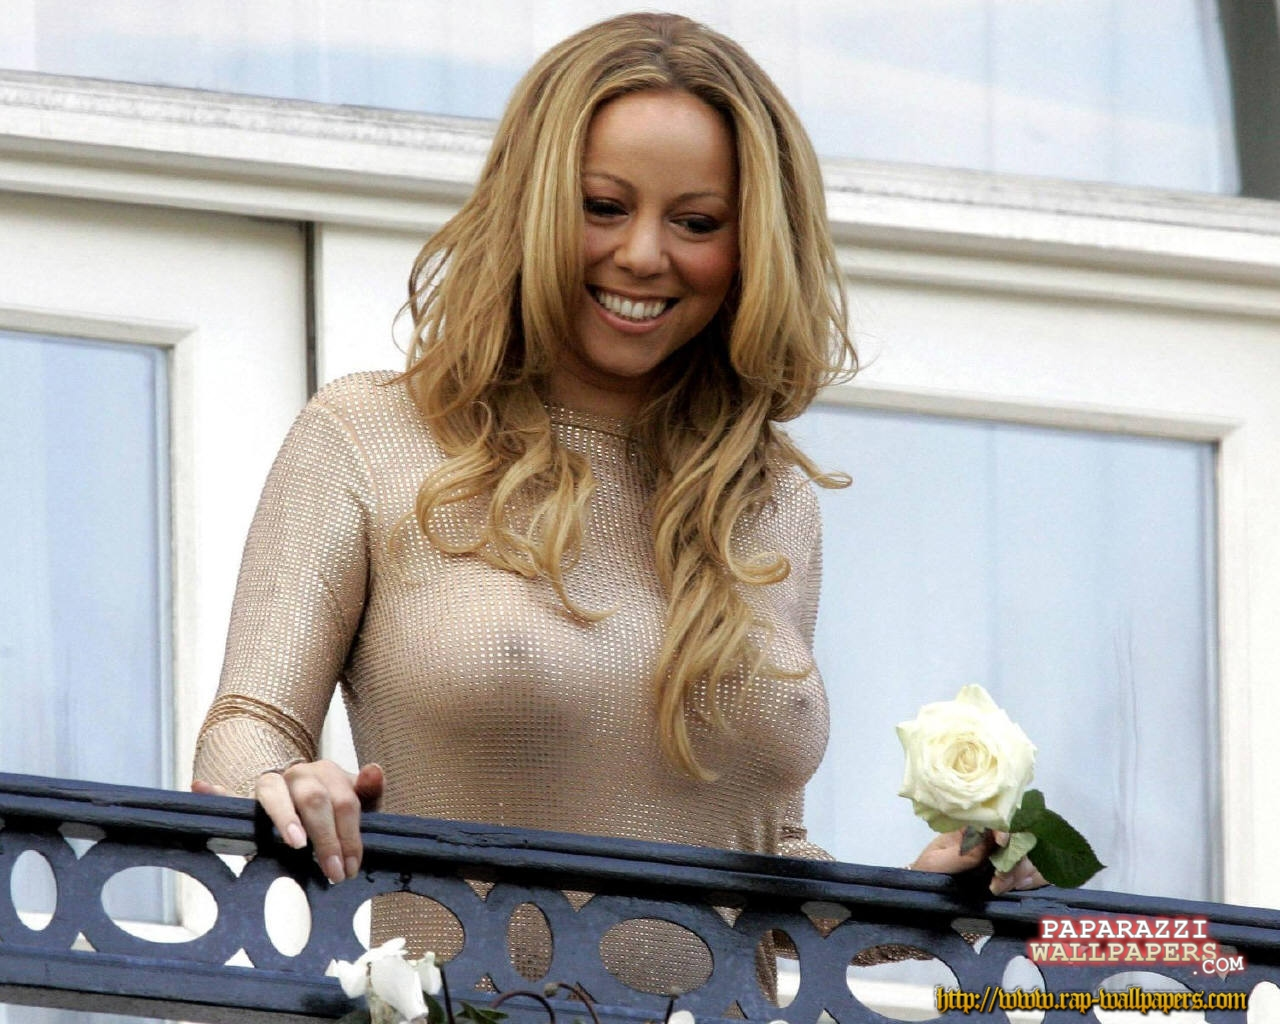 mariah_carey_wallpapers_027.jpg